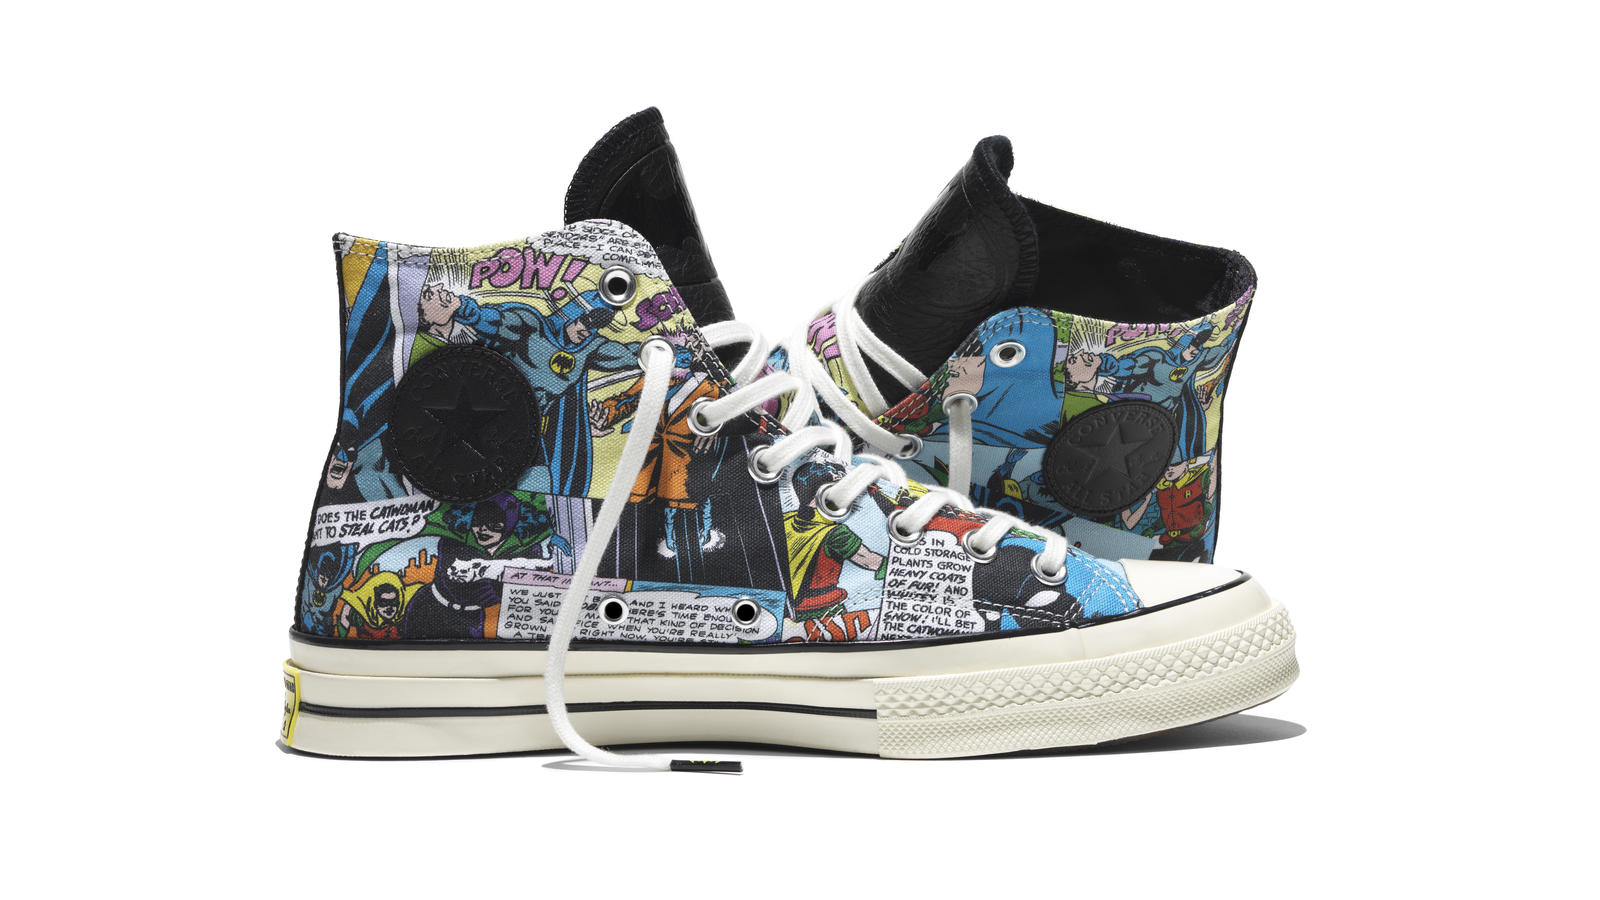 7ba0ec658445 ... clearance converse unveils chuck taylor all star 70 dc comics batman  collection nike news 87a50 55612